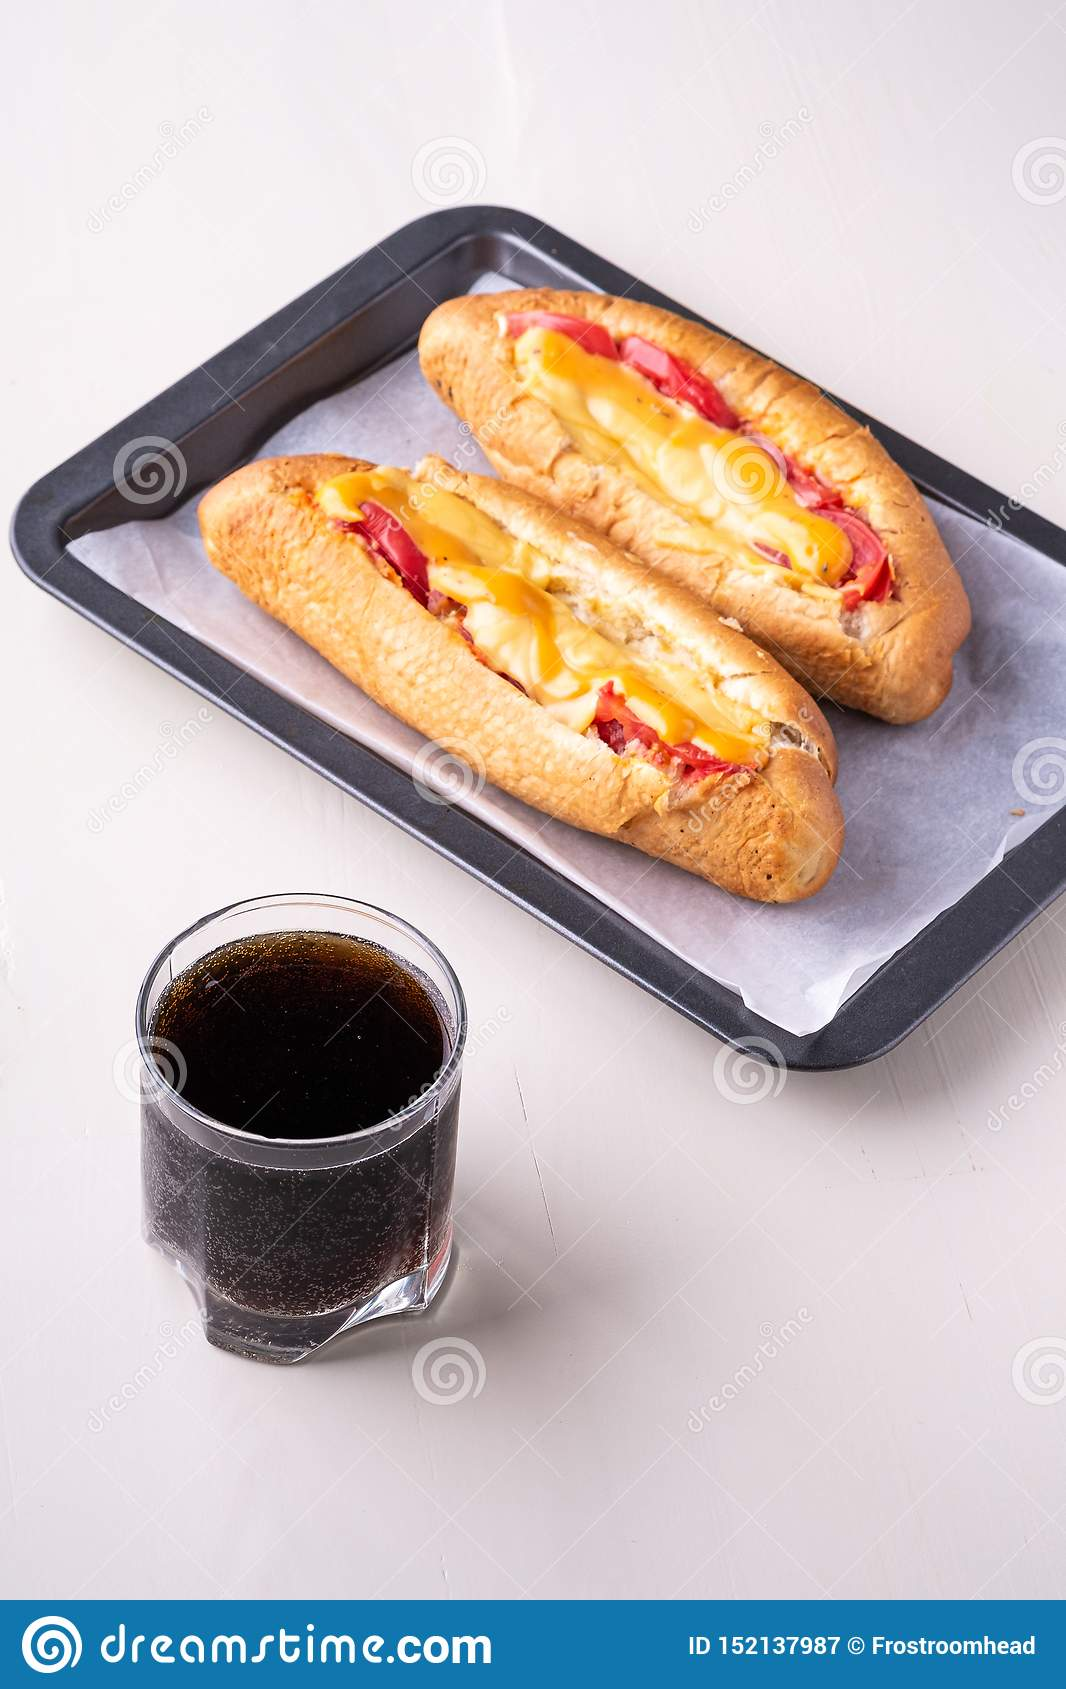 Single glass of cola drink with two hot dog fast food junk fresh sausage cheese sauce isolated on baking tray white background